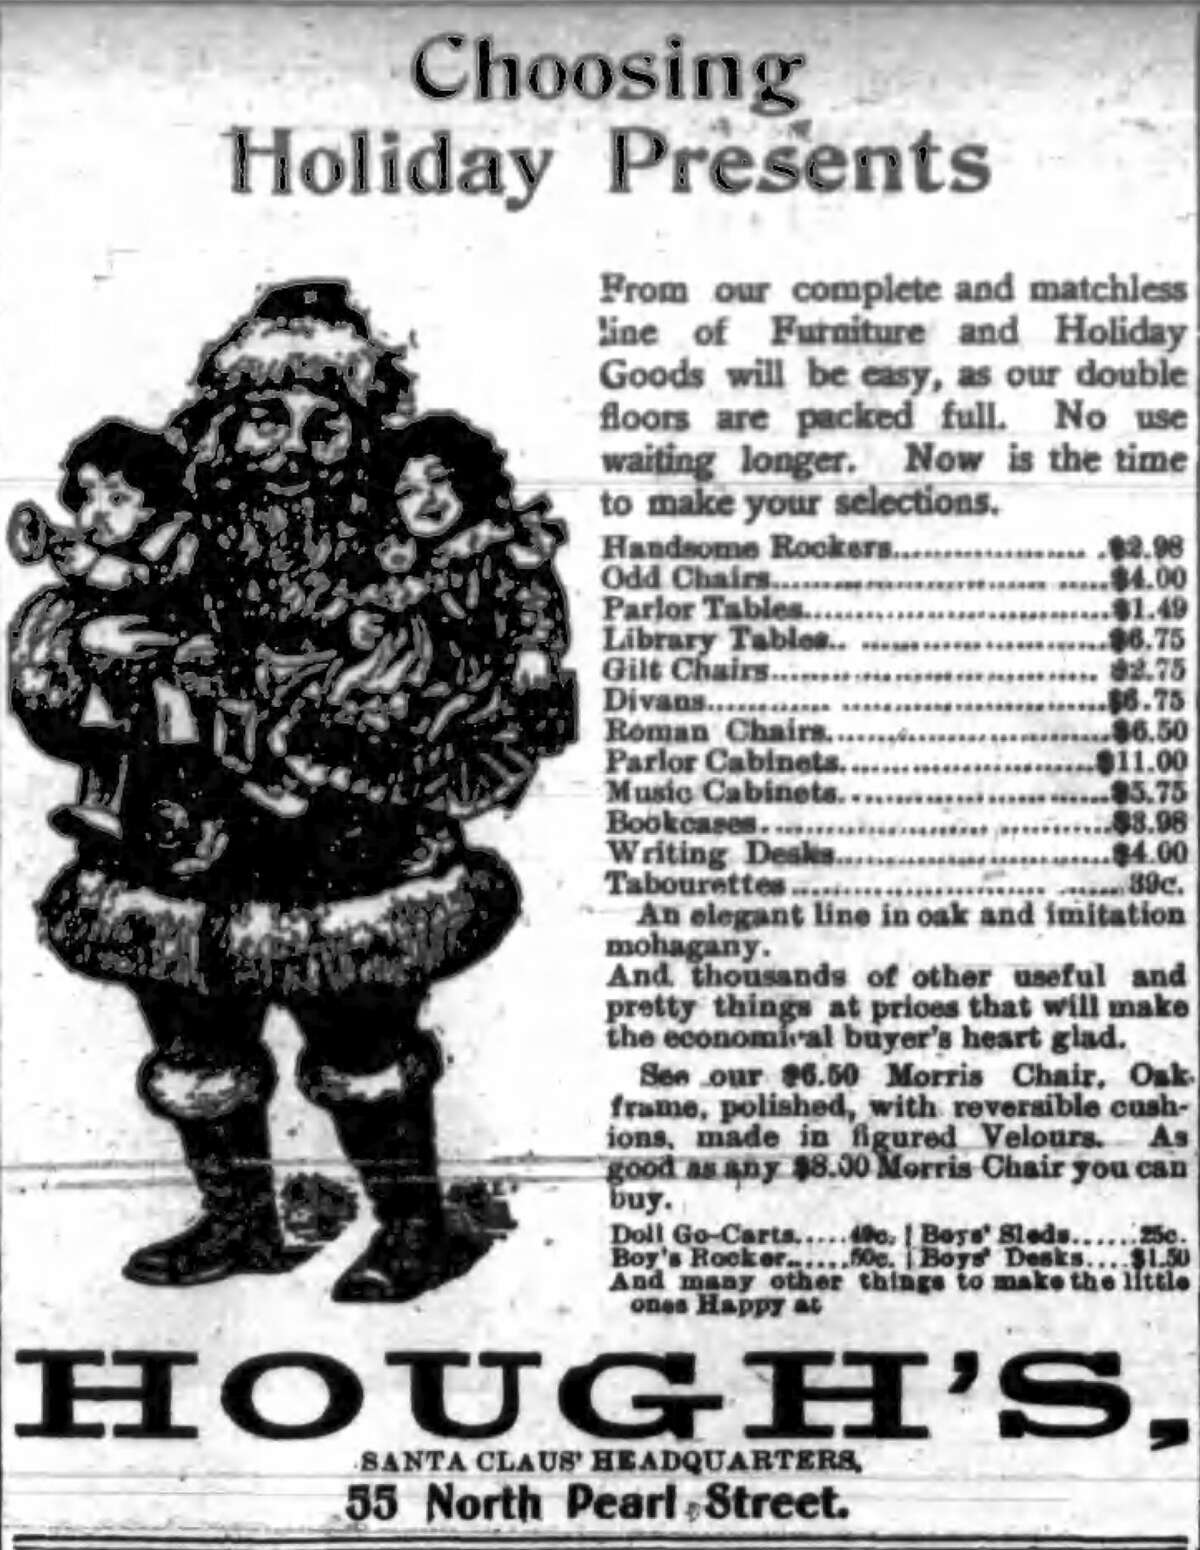 Dec. 15, 1900 ad in the Times Union.